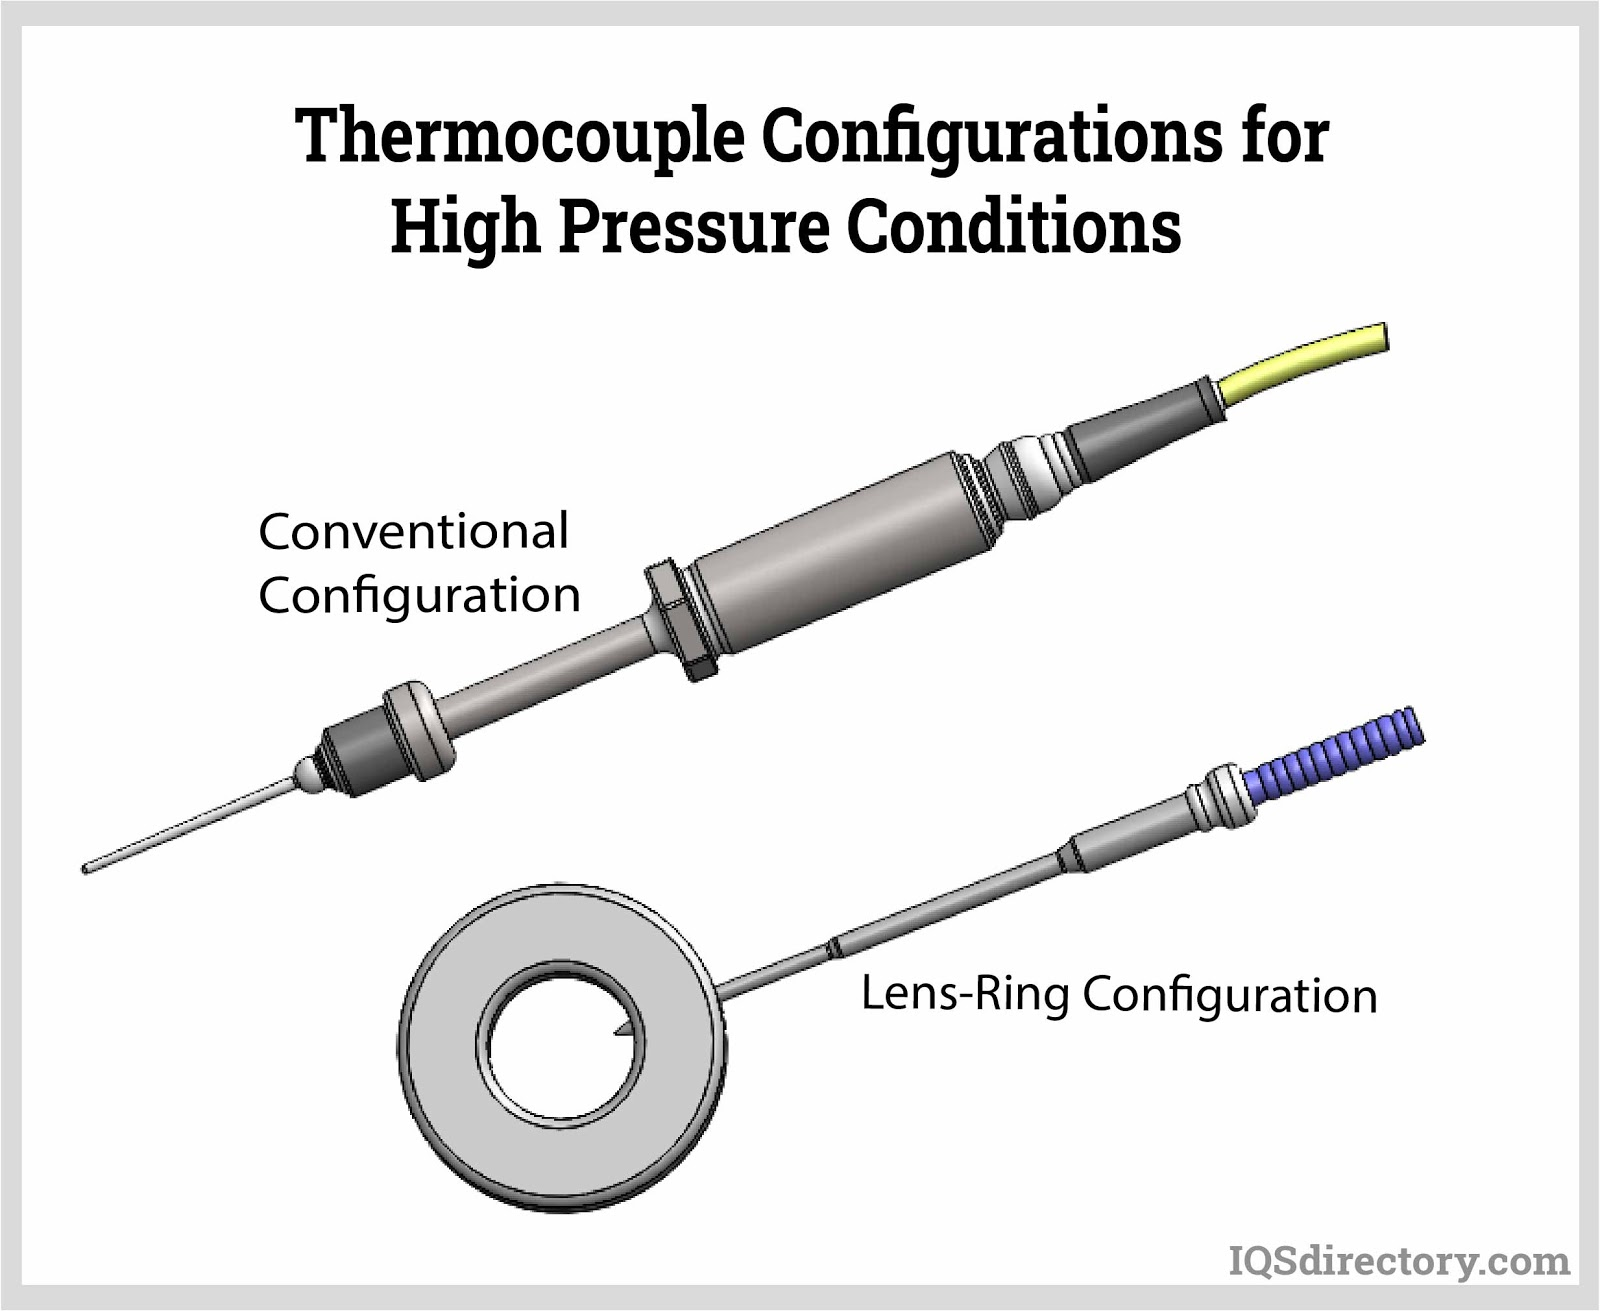 Thermocouple Configurations for High Pressure Conditions